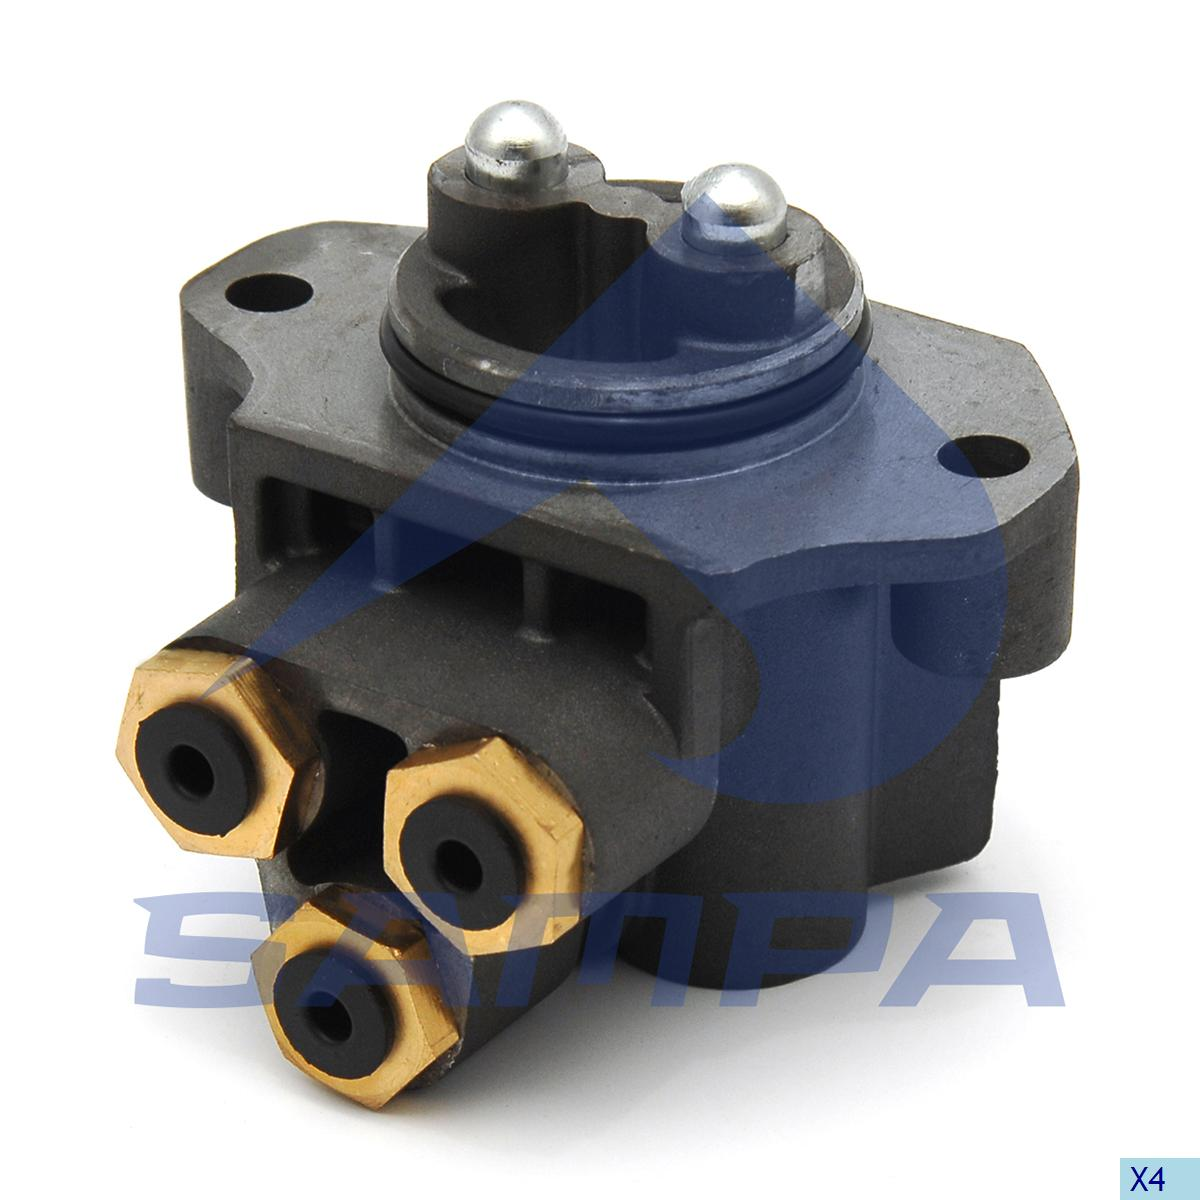 Valve, Gear Box Housing, Mercedes, Gear Box